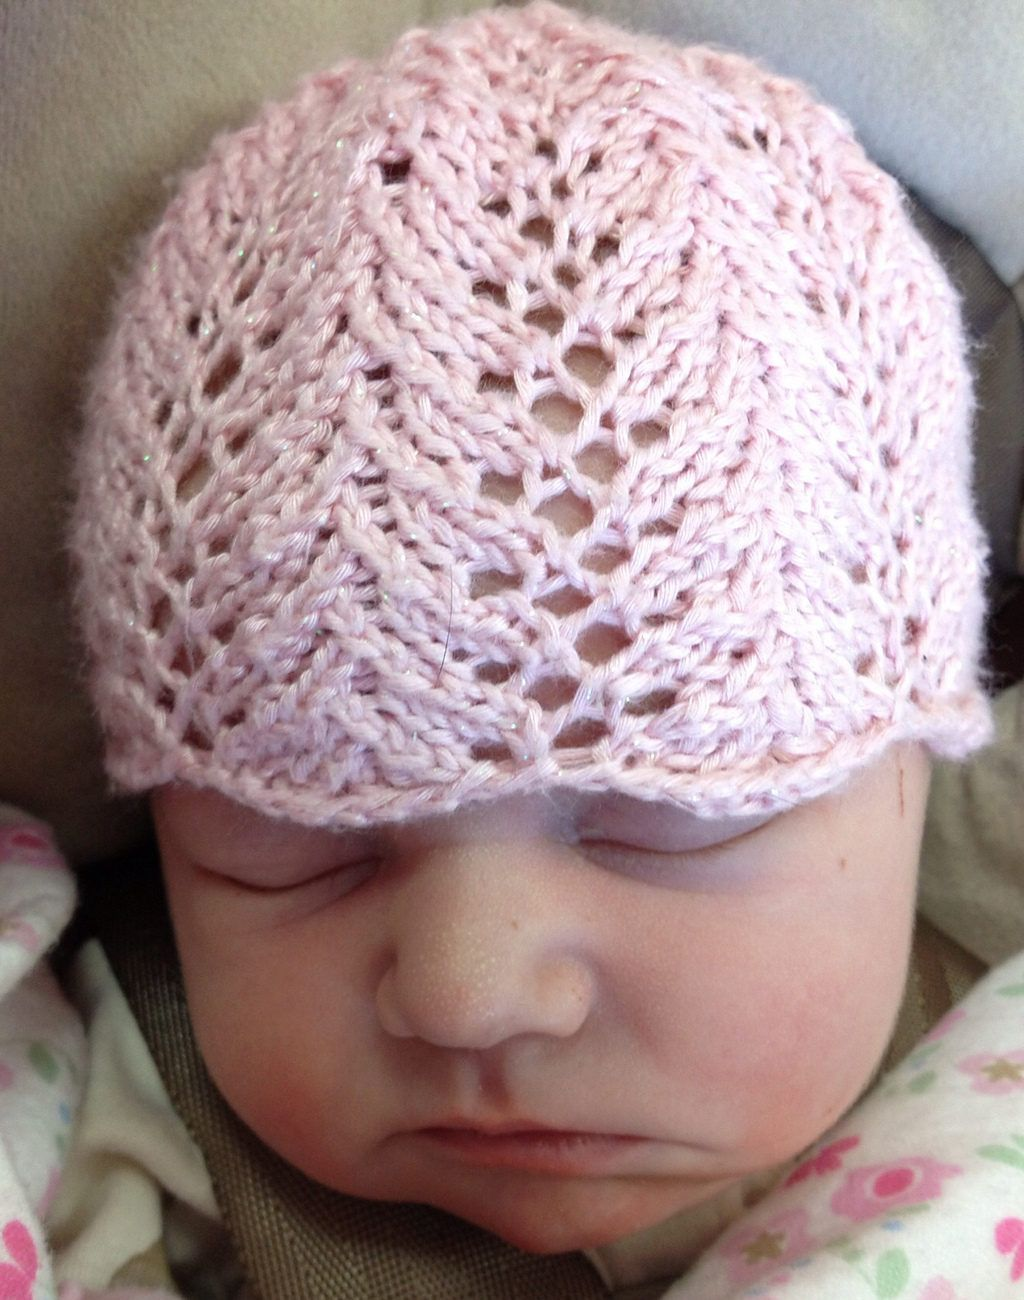 Free Knitting Pattern for Vine Lace Baby Hat | baby items ...